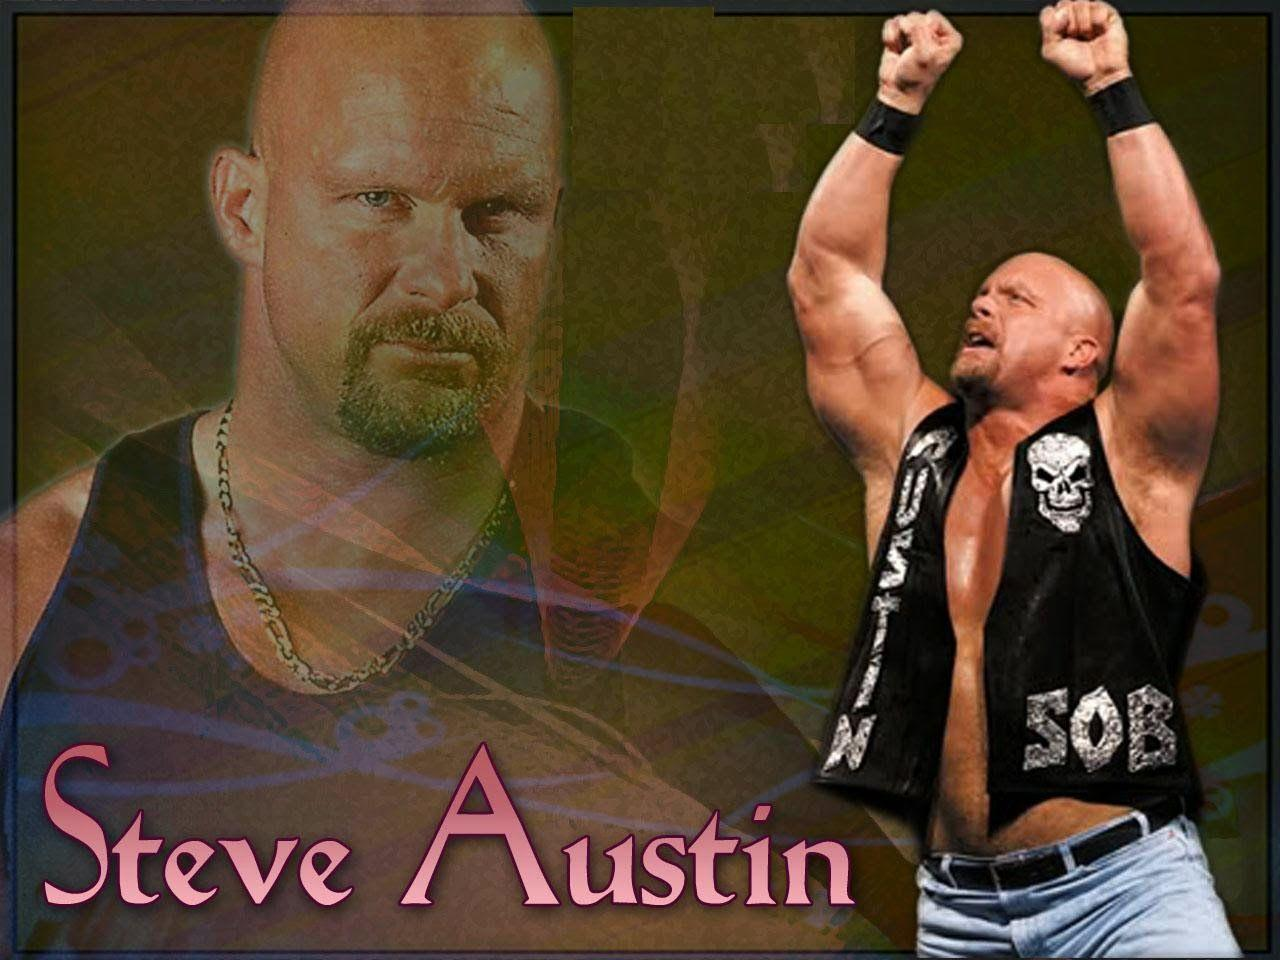 Stone Cold Steve Austin Wallpaper Middle Finger